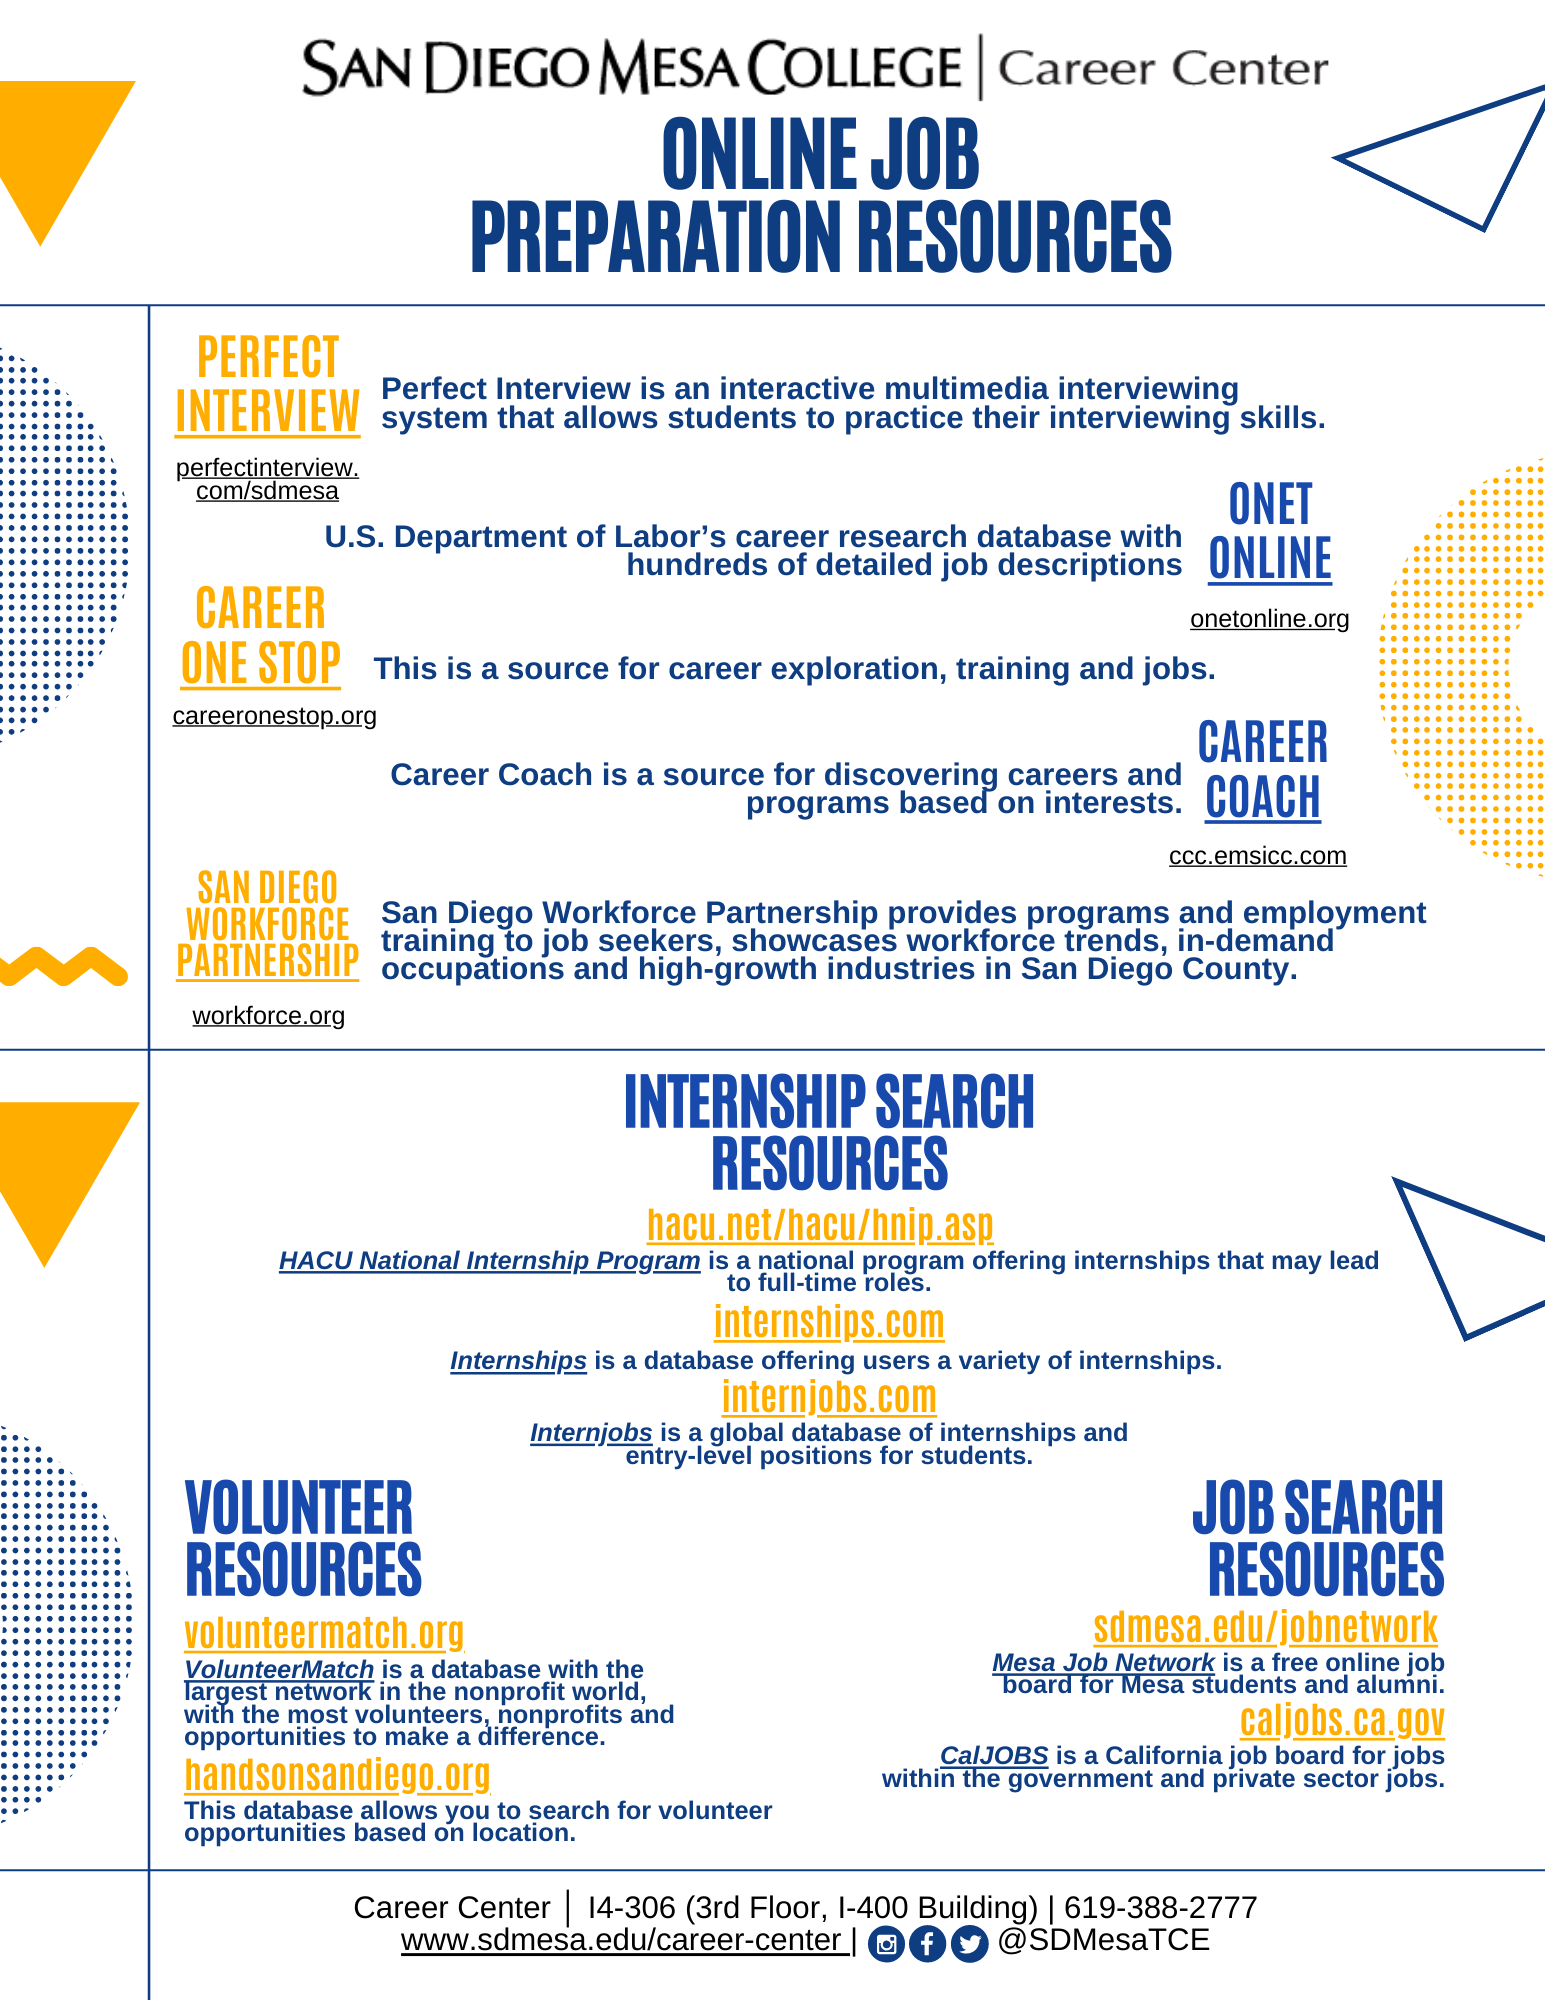 Job Preparation Resources